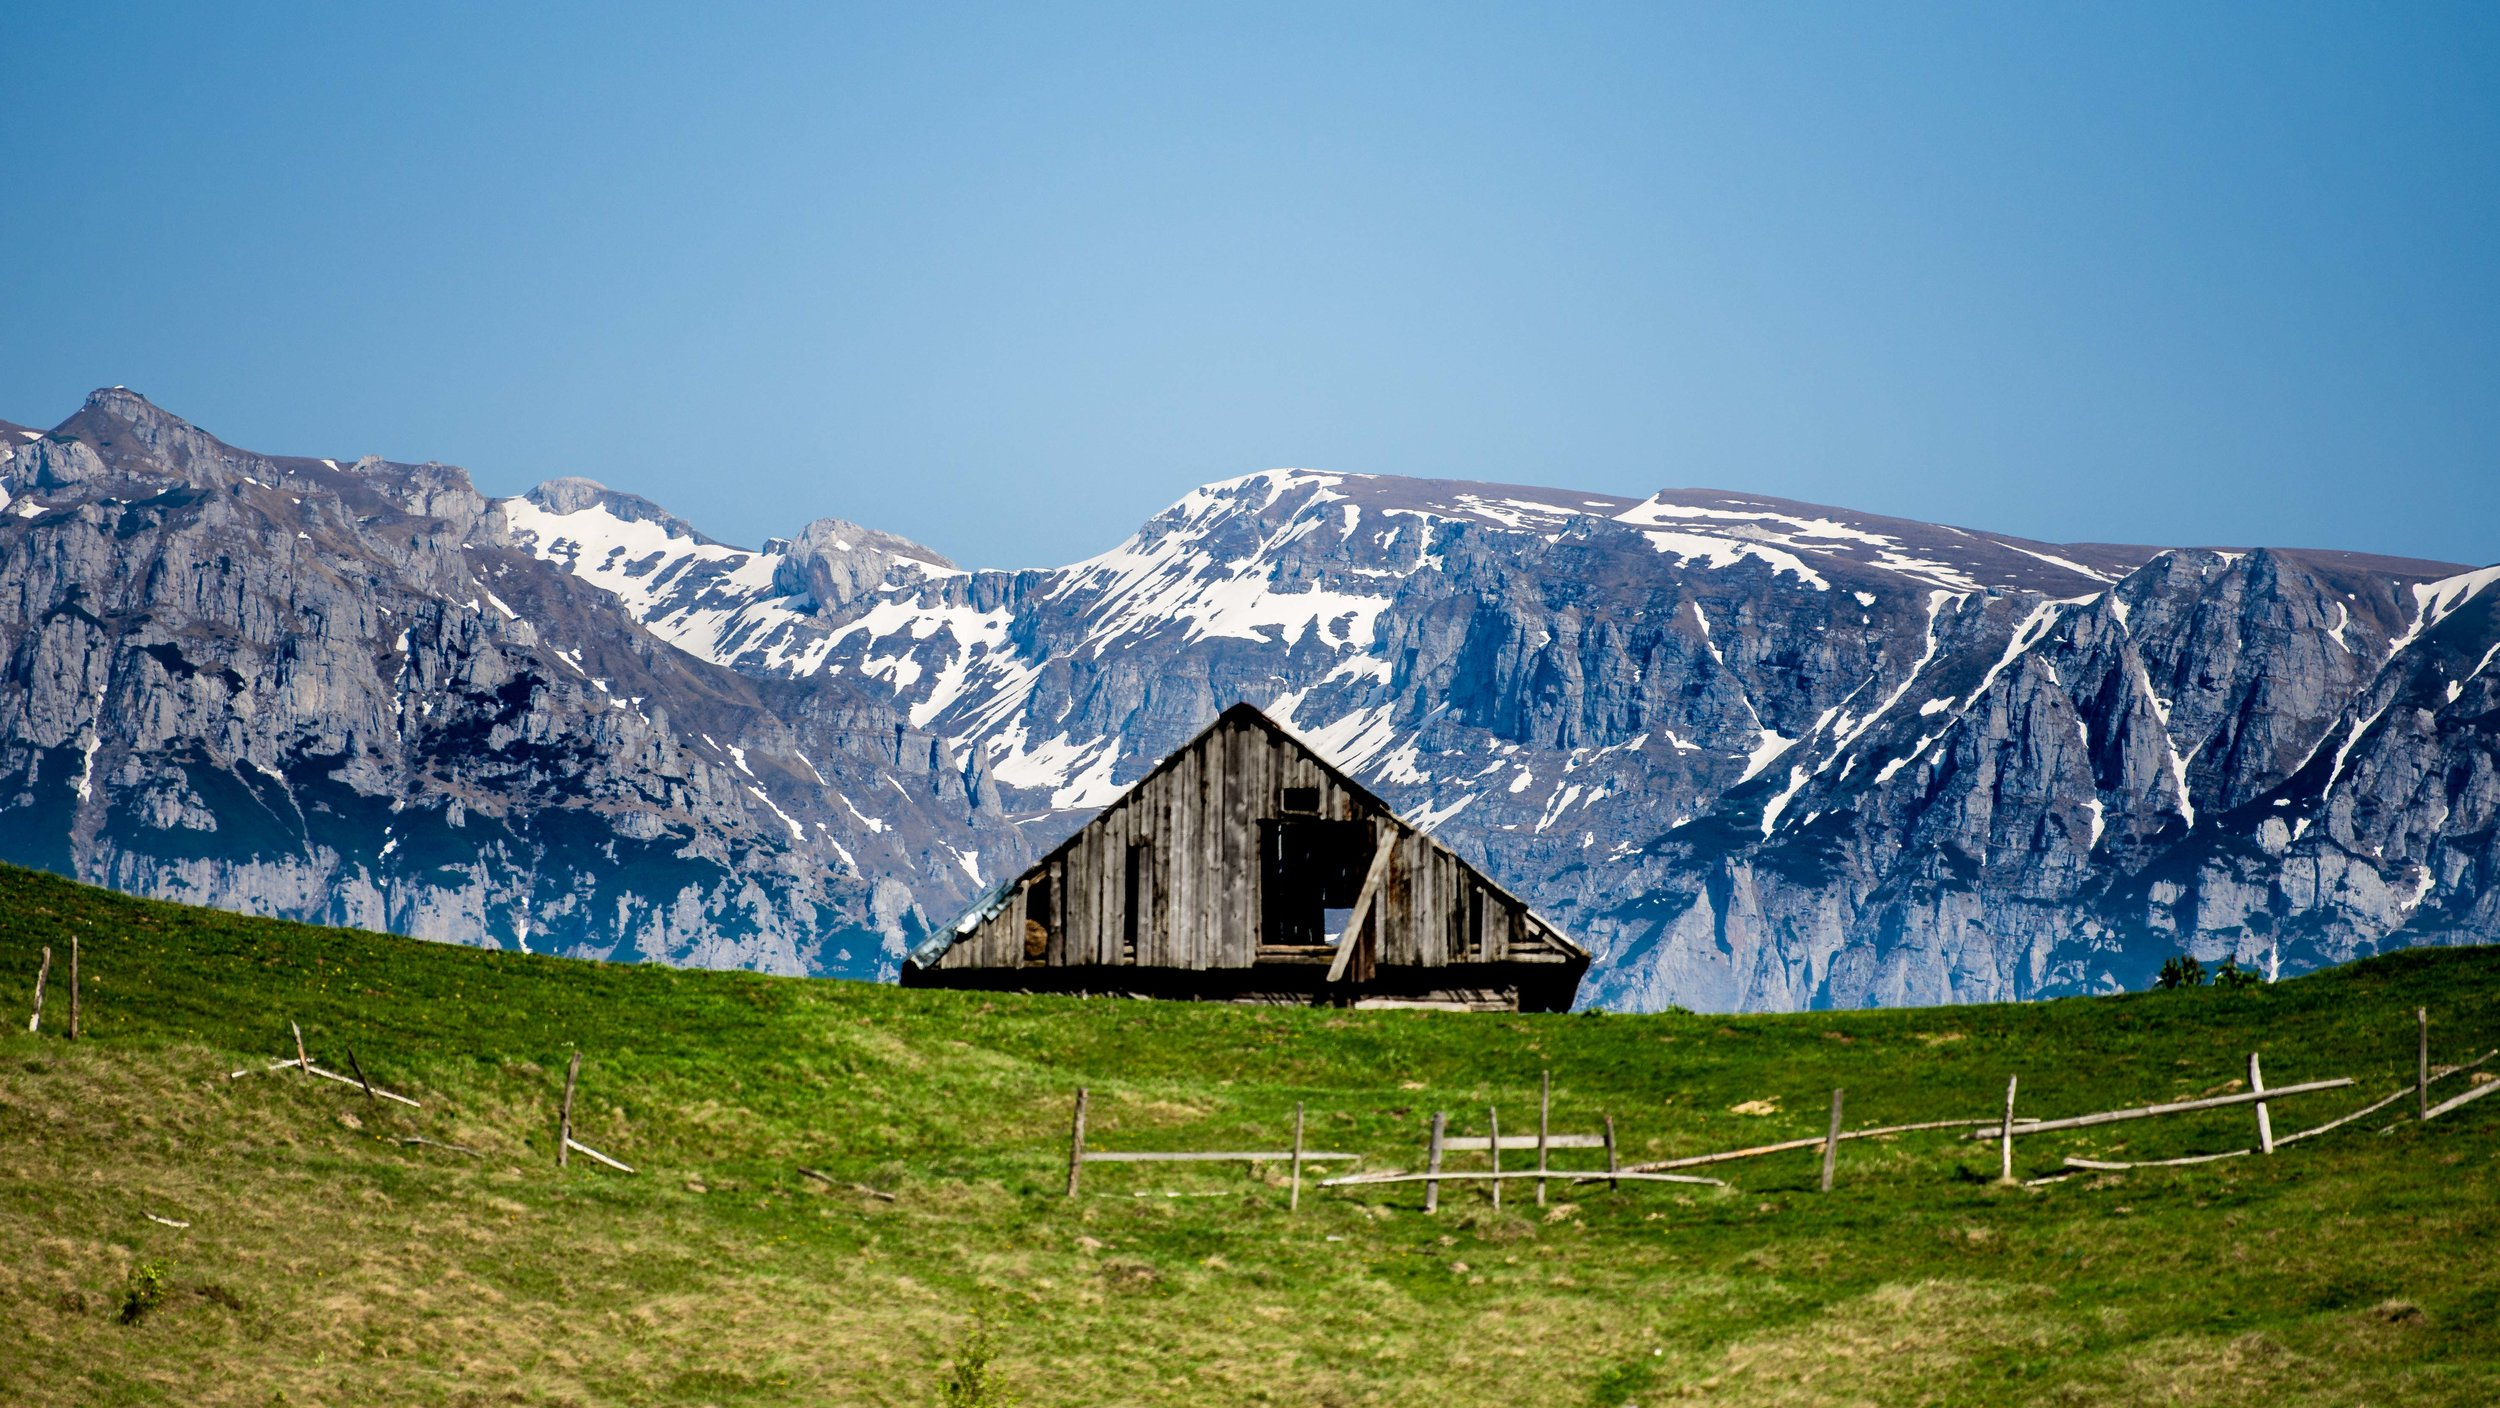 Picturesque abandoned house in Bucegi mountains